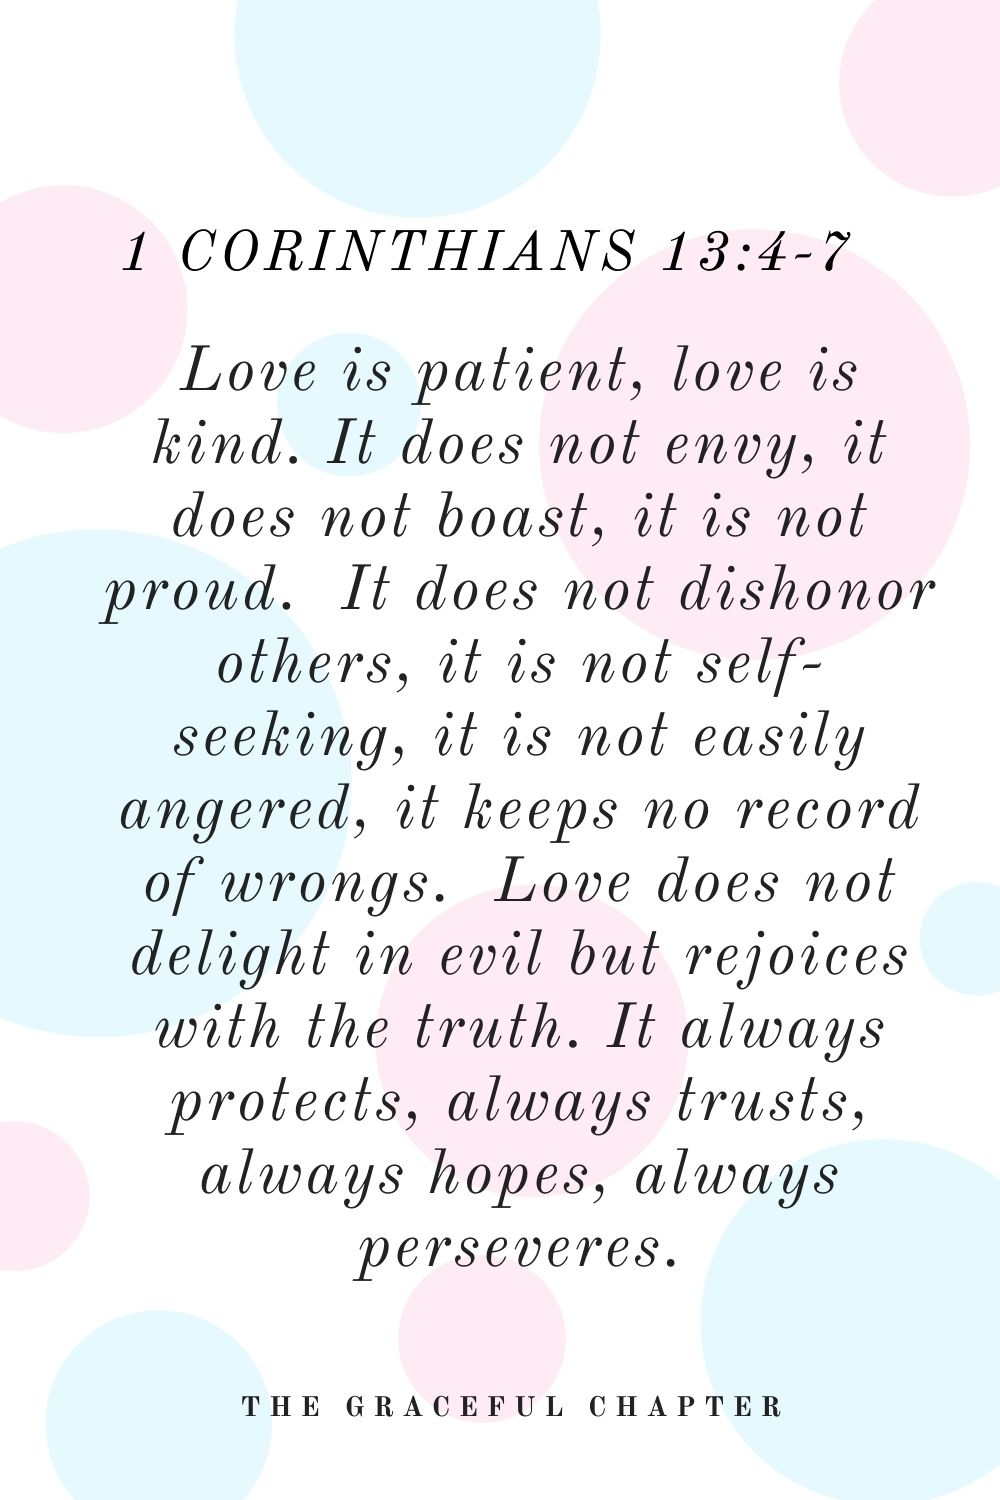 Love is patient, love is kind. It does not envy, it does not boast, it is not proud.  It does not dishonor others, it is not self-seeking, it is not easily angered, it keeps no record of wrongs.  Love does not delight in evil but rejoices with the truth.  It always protects, always trusts, always hopes, always perseveres. 1 Corinthians 13:4-7